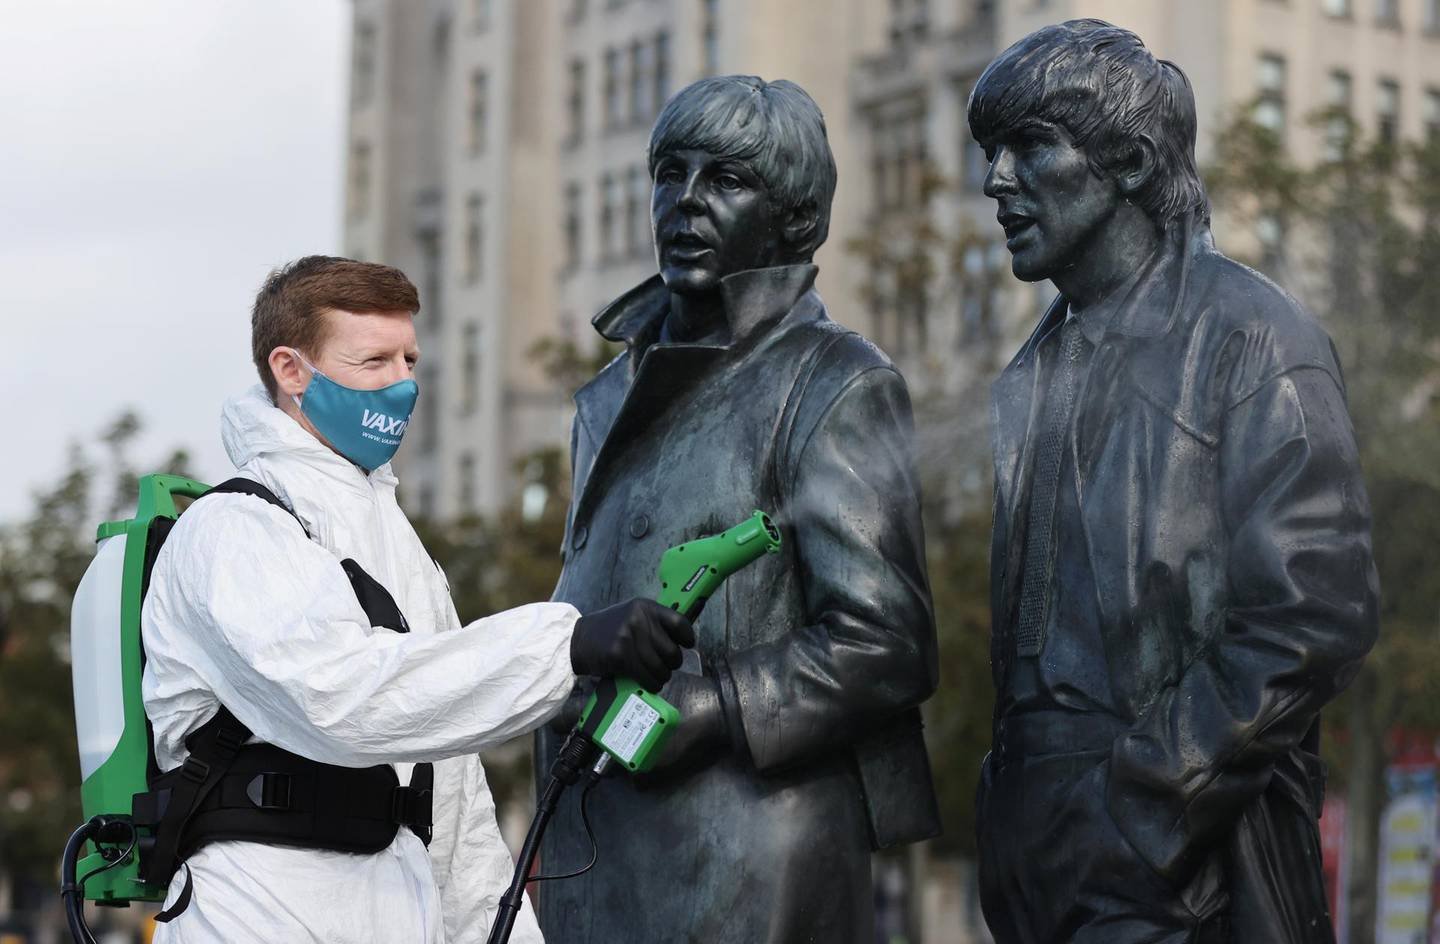 A man disinfects a statue of the Beatles amid the outbreak of the coronavirus disease (COVID-19), in Liverpool, Britain October 1, 2020. REUTERS/Carl Recine